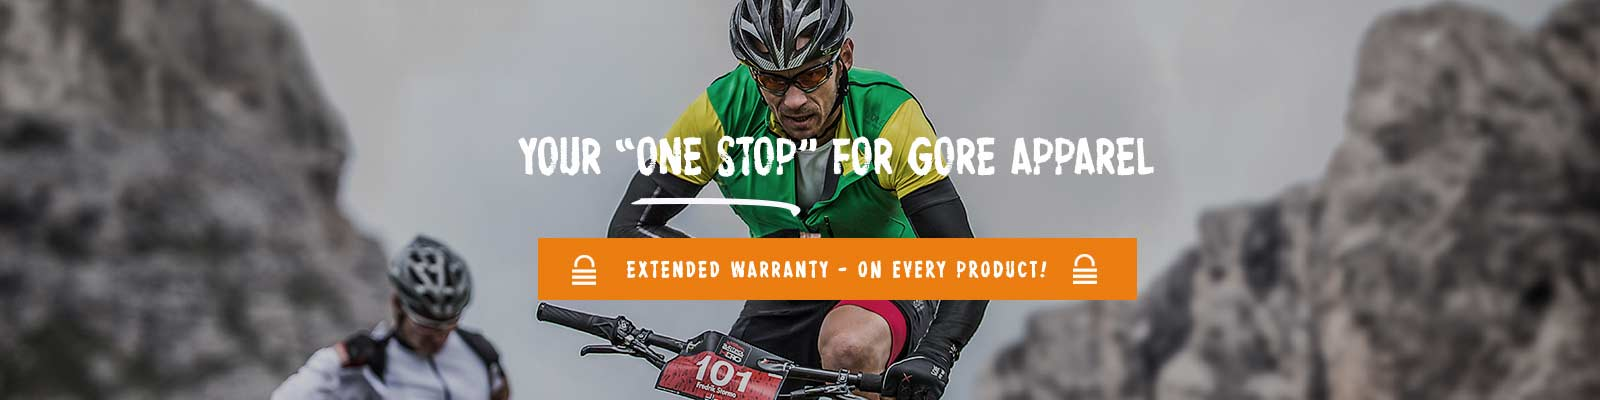 TG Store offers a wide range of MTB wear from Gore